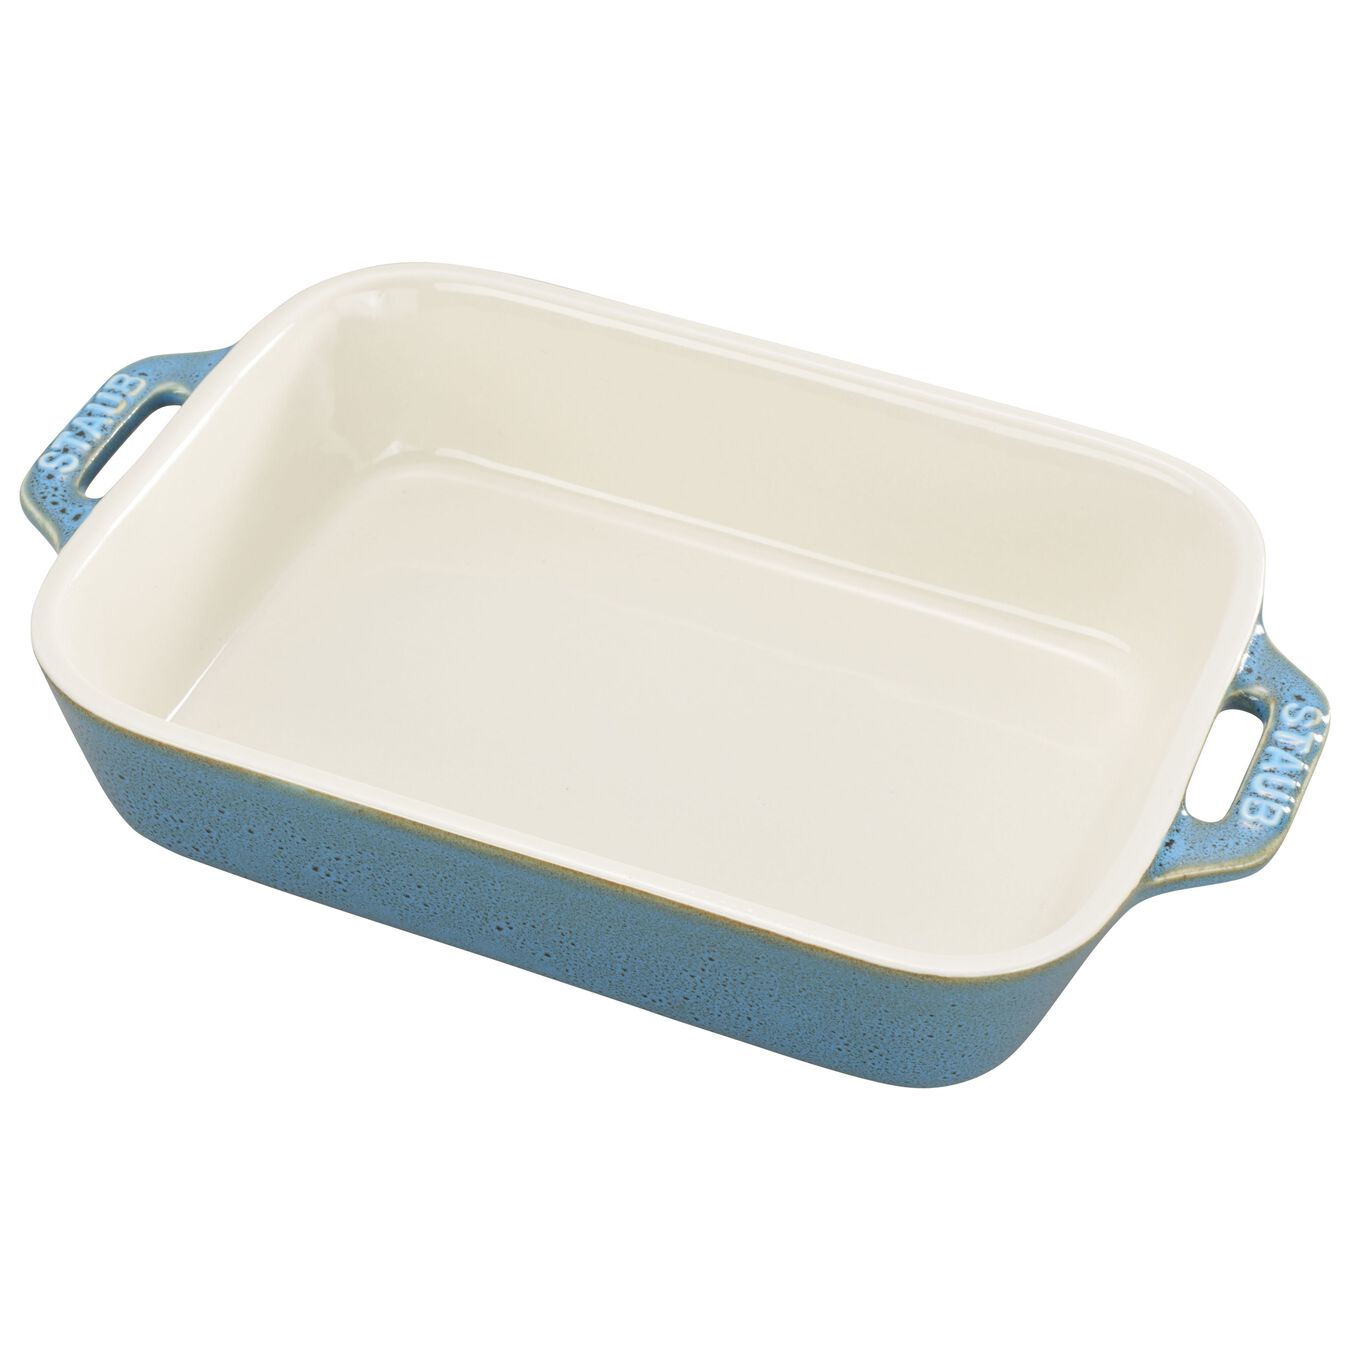 6.3 x 8-inch, rectangular, Oven dish, rustic turquoise,,large 1